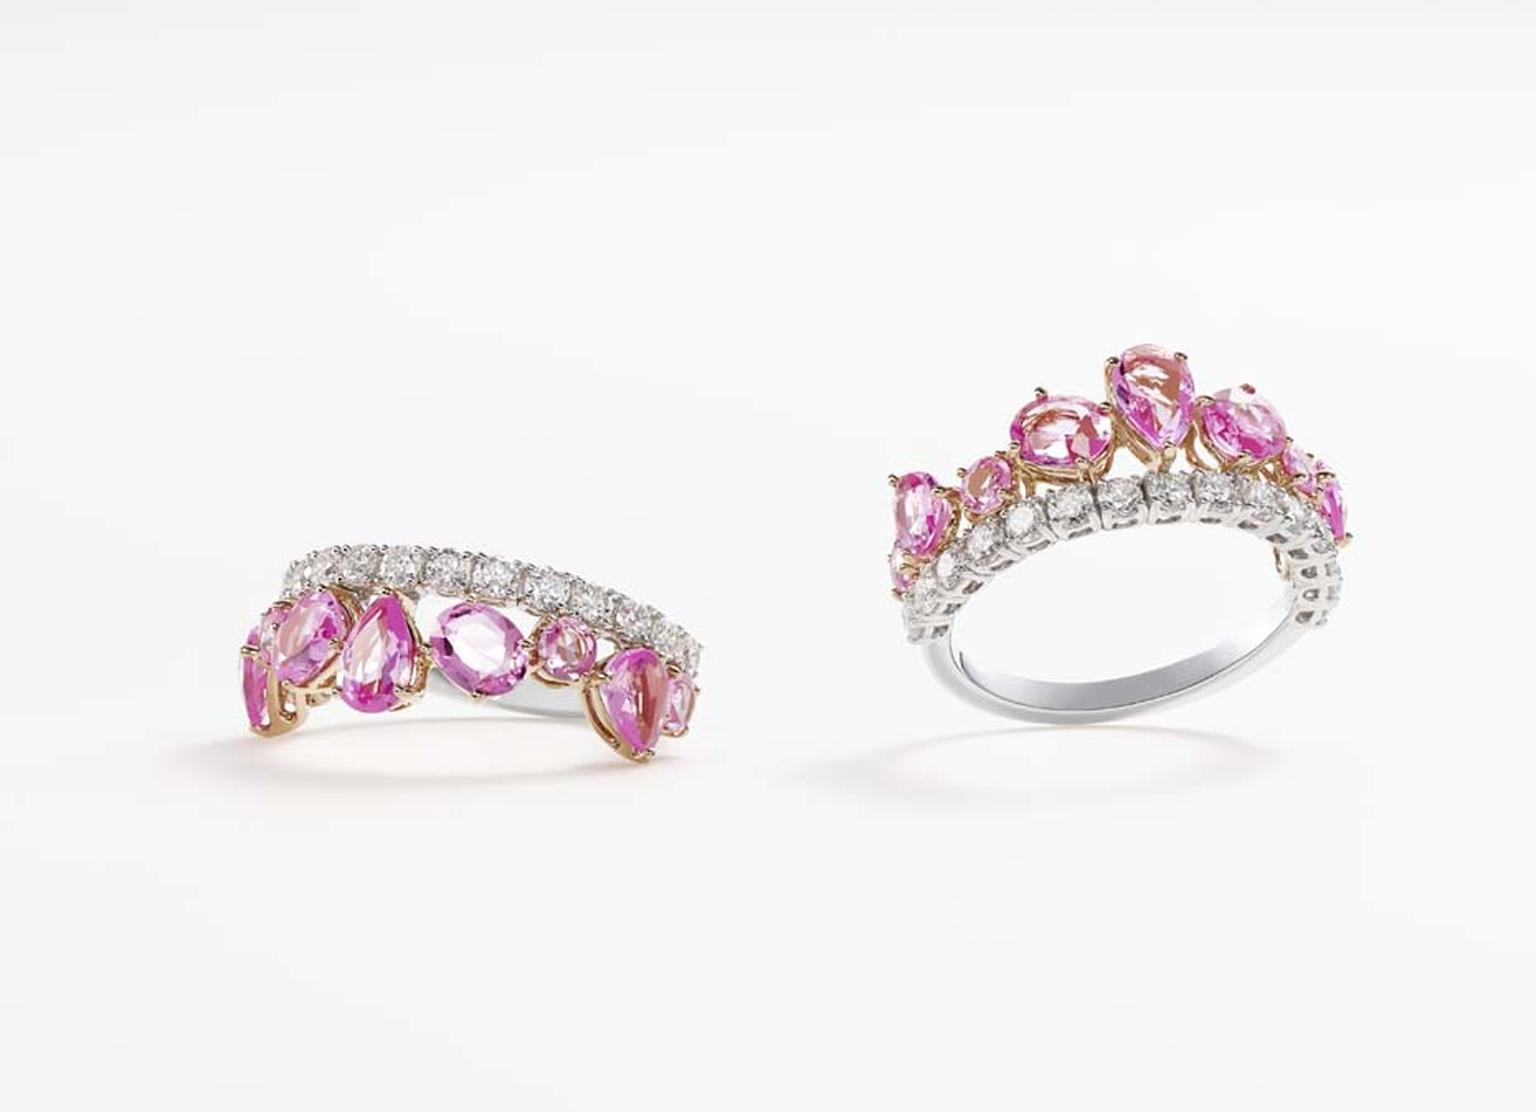 These William & Son pink sapphire rings are the perfect gift after the birth of a girl - or twin girls! They can be worn individually or as a pair, stacked side by side on the finger.